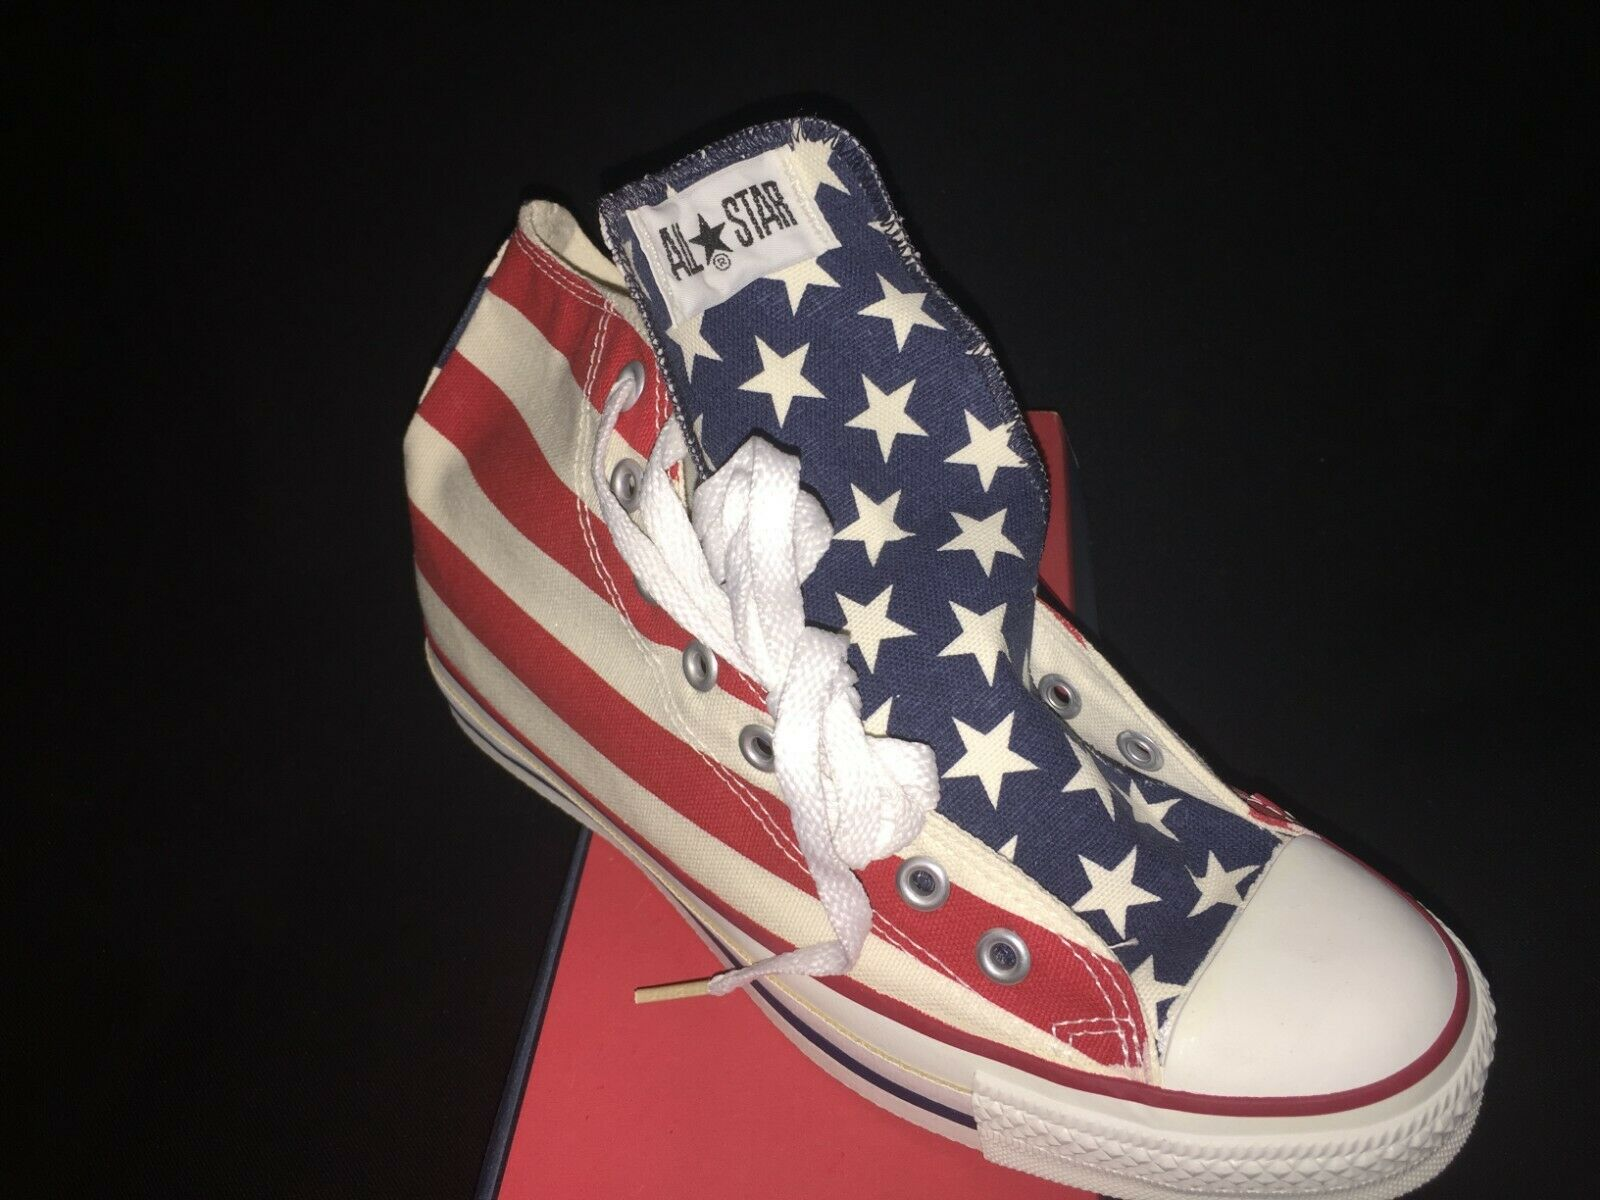 Converse All Star Chuck Taylor Stars & Bars pattern (vintage NOS made in USA)